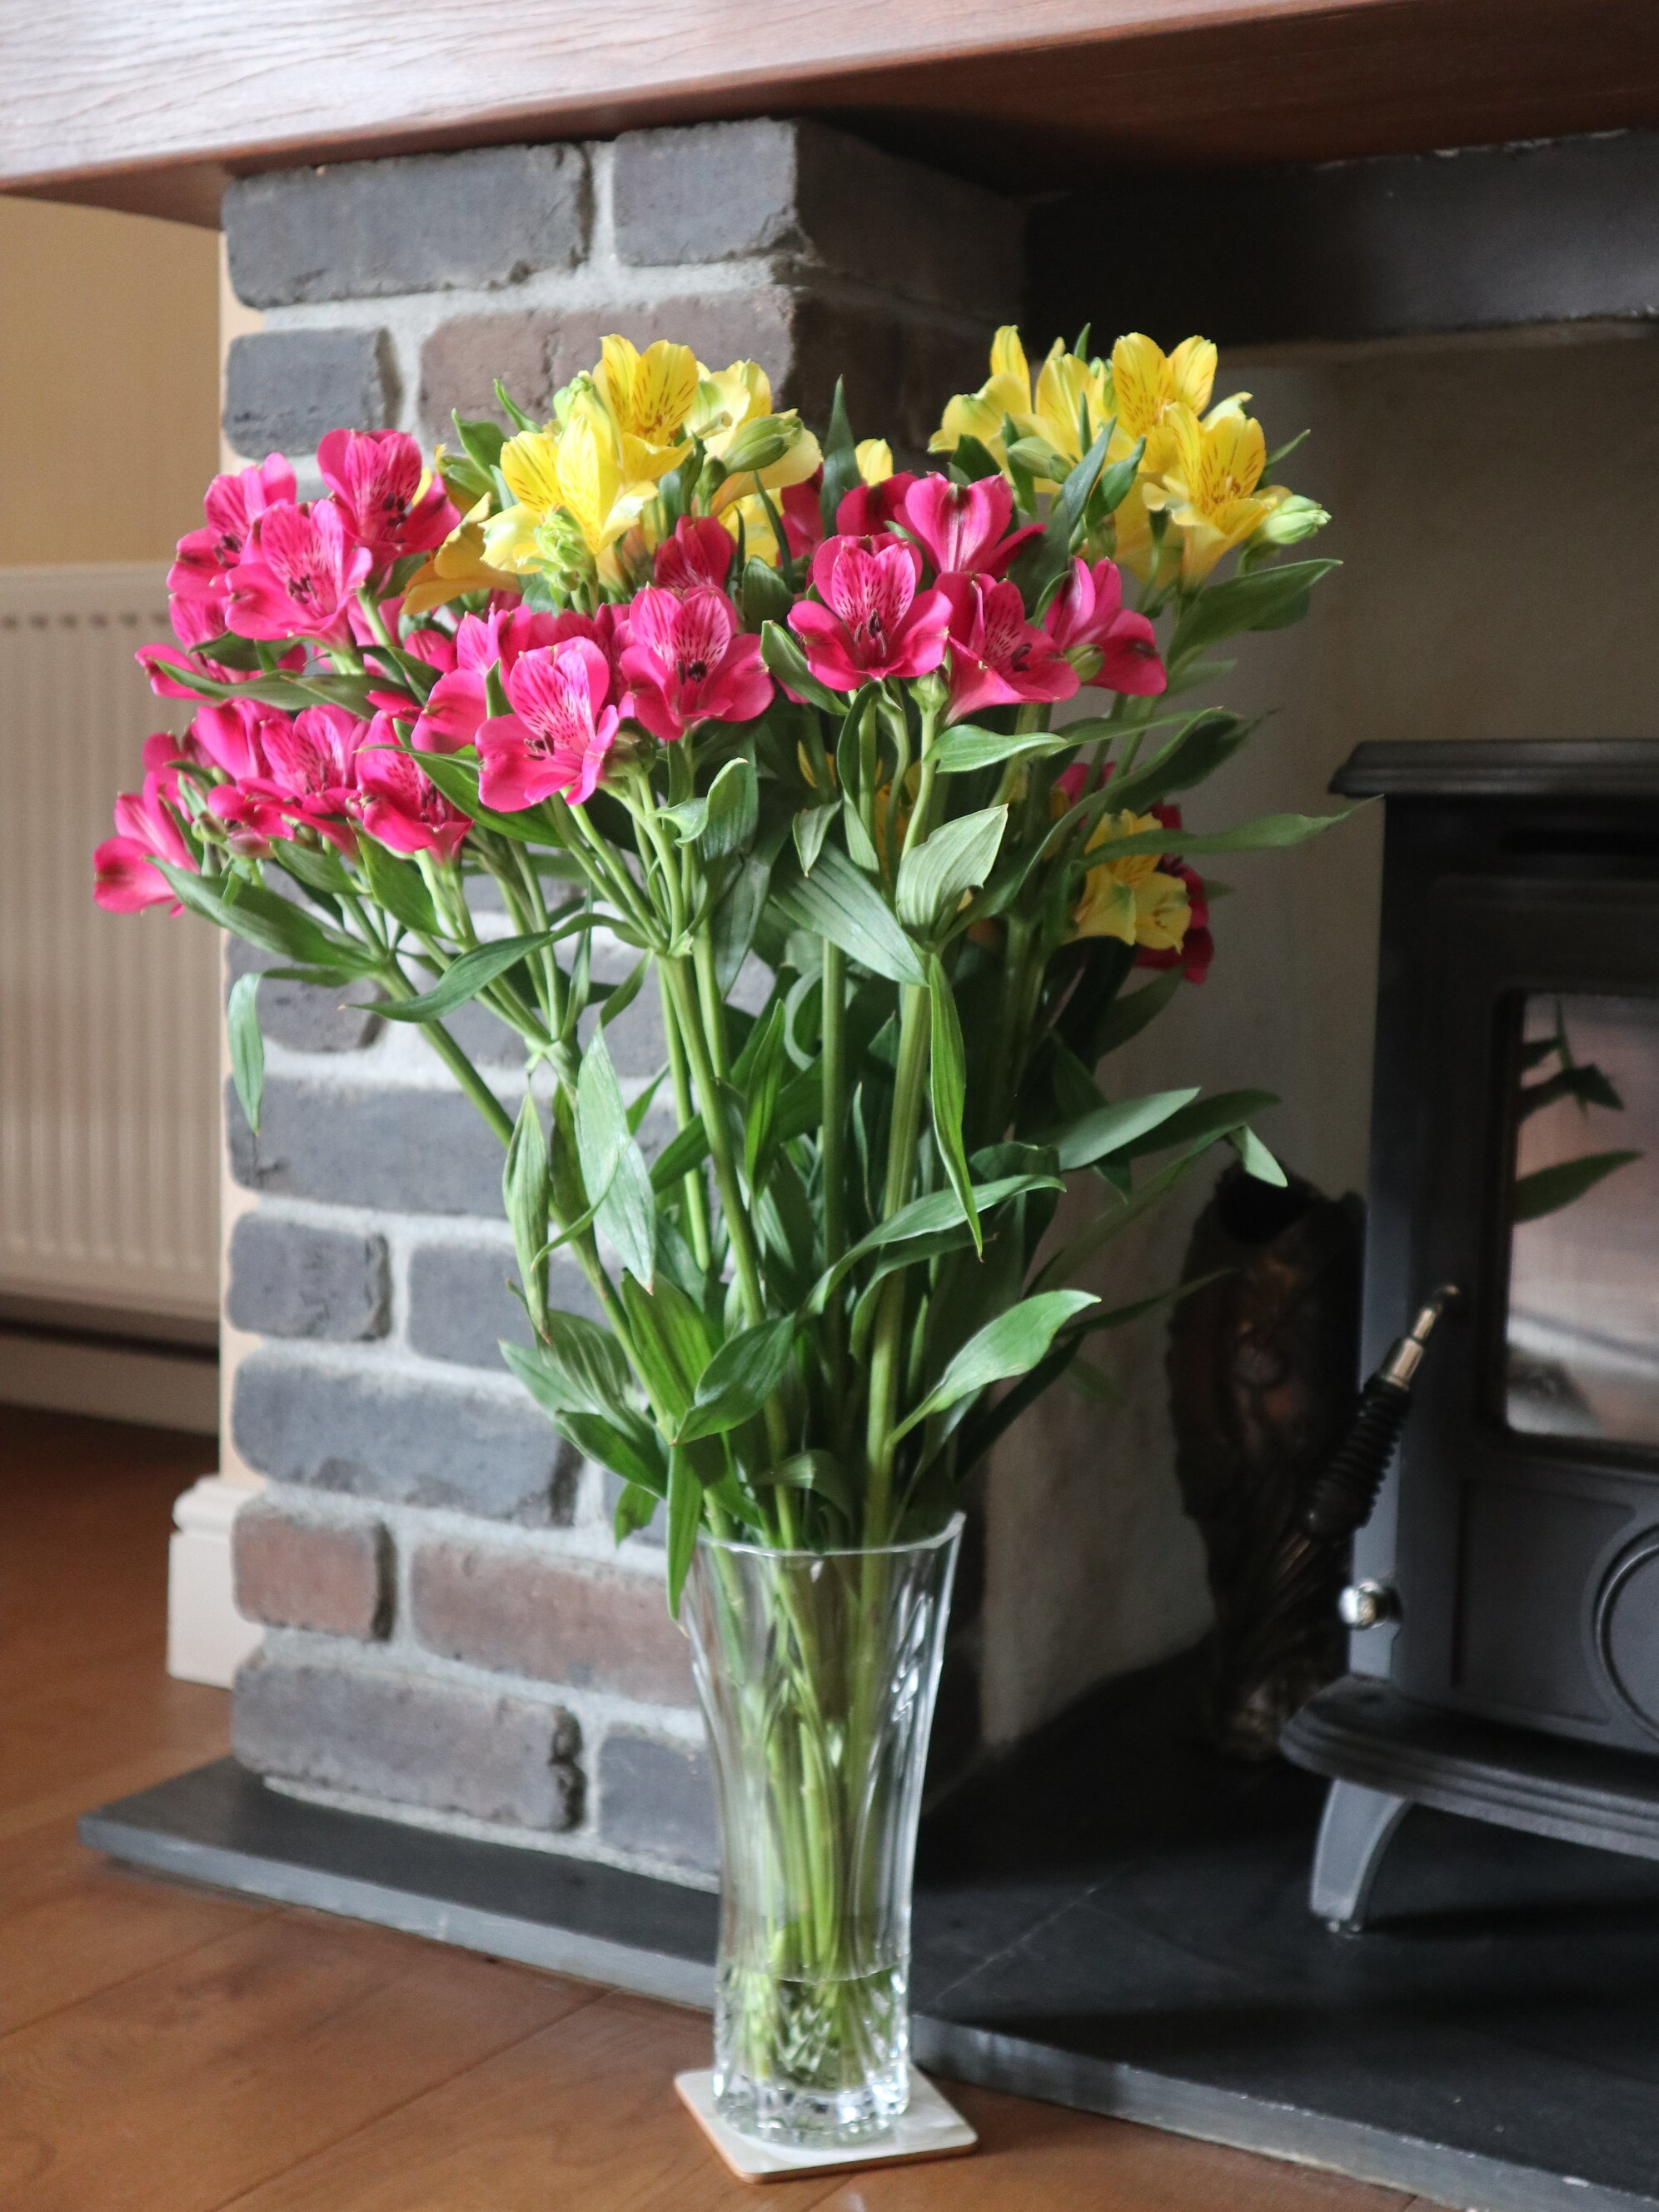 Flowers from Cornwall